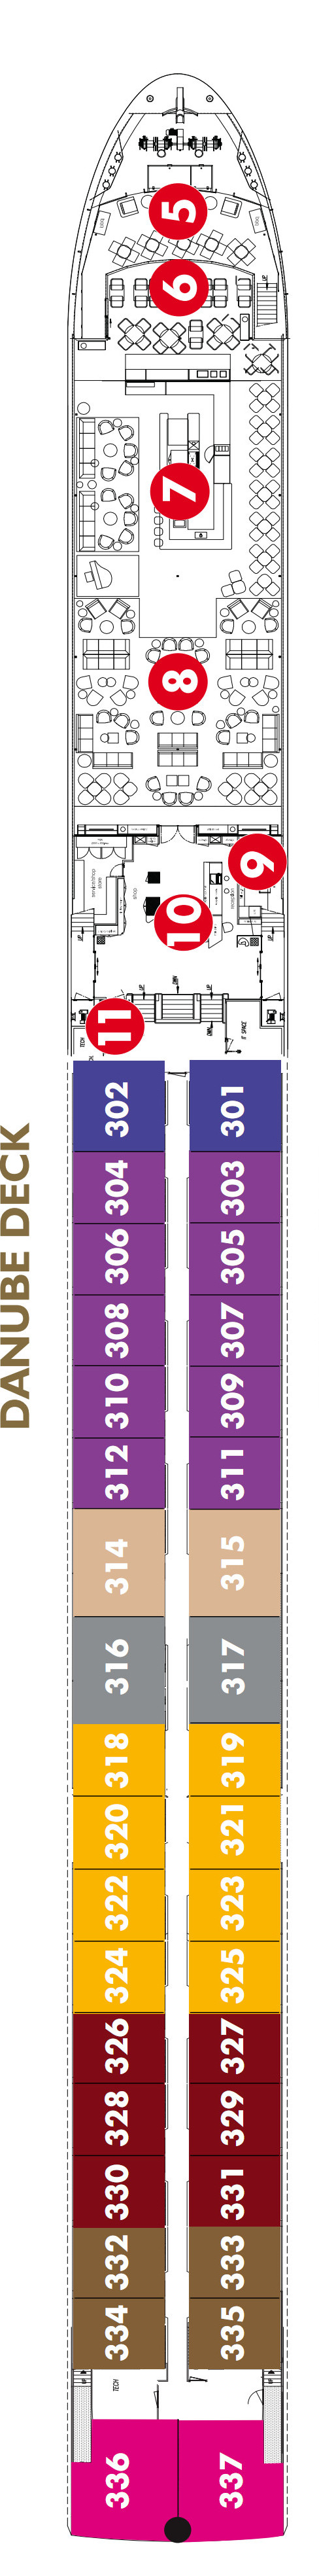 Scenic Emerald Danube Deck layout